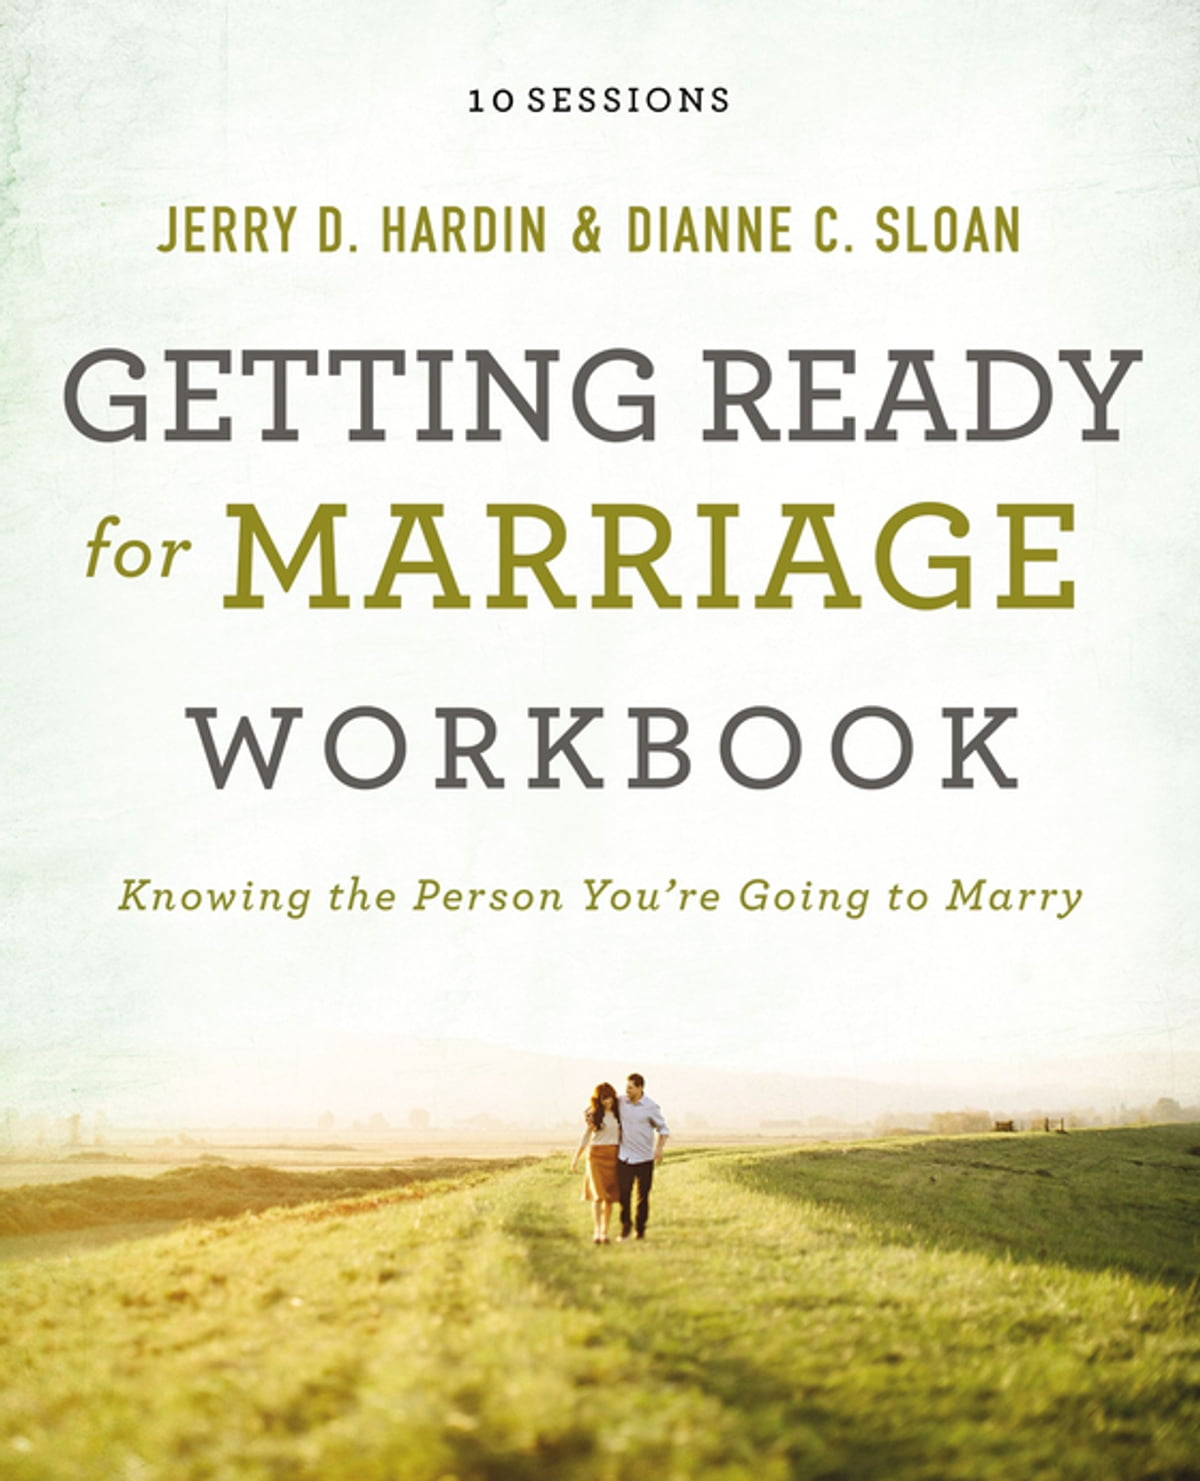 Getting Ready for Marriage Workbook eBook by Dianne C. Sloan ...